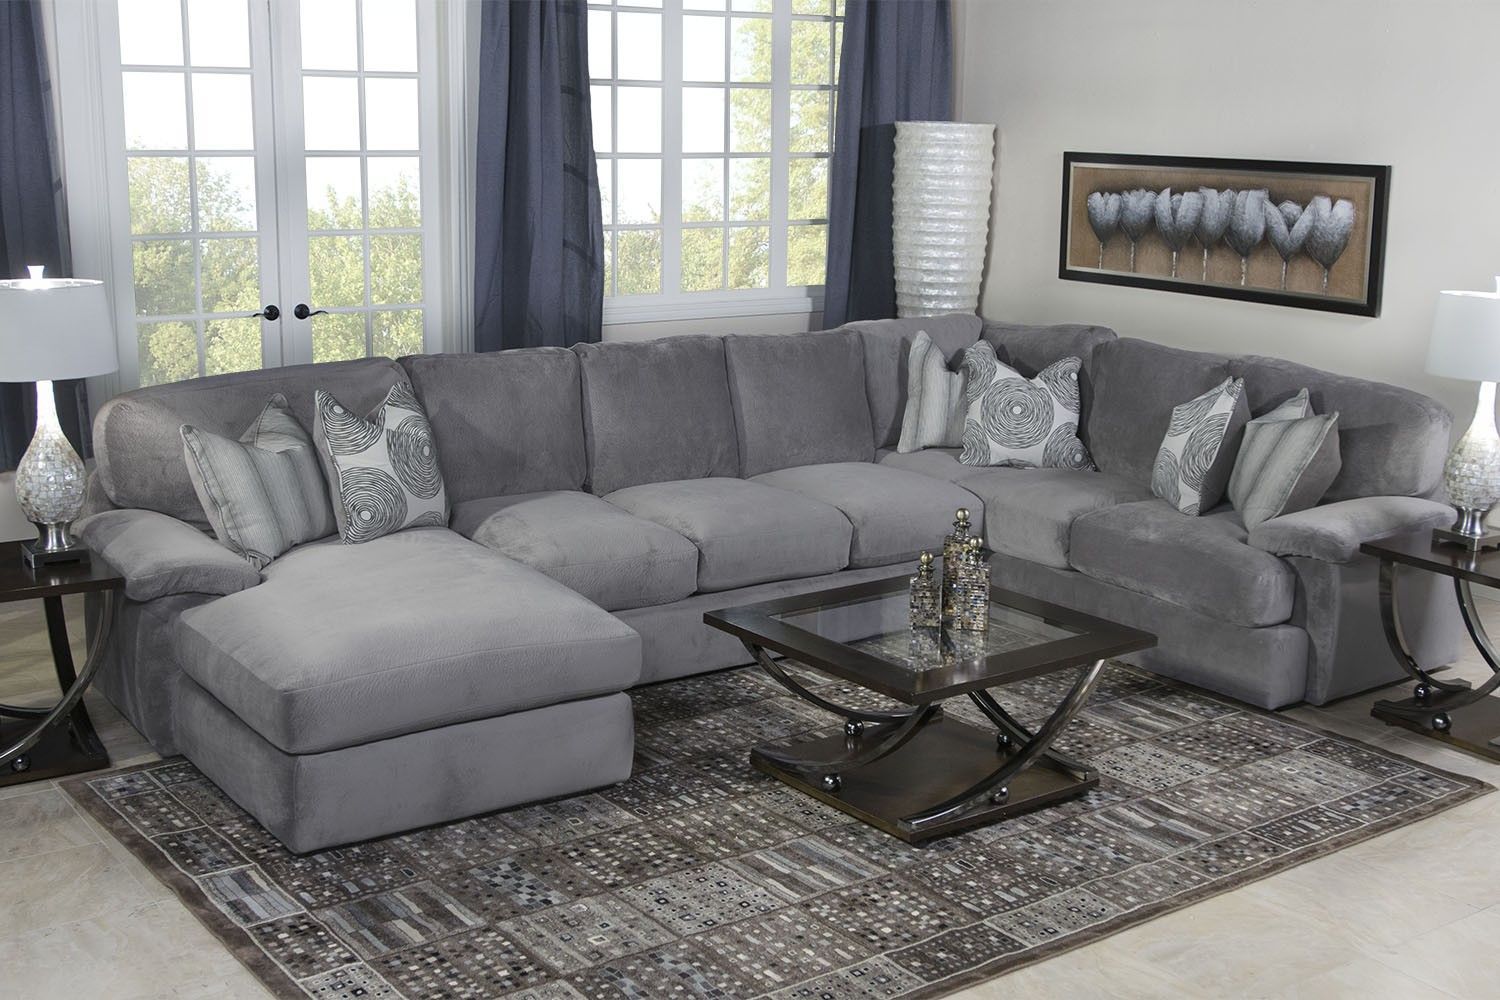 Key west sectional living room in gray living room mor for Living room design ideas grey sofa